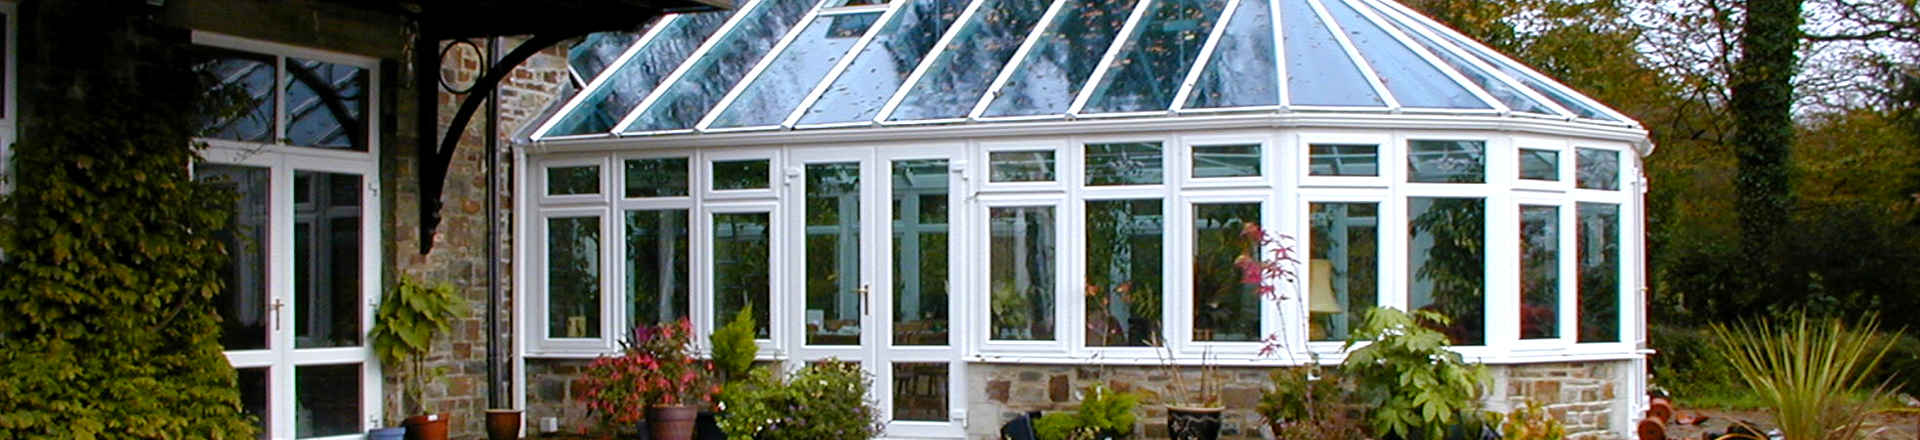 Victorian Conservatory by Exmoor Fascias in North Devon